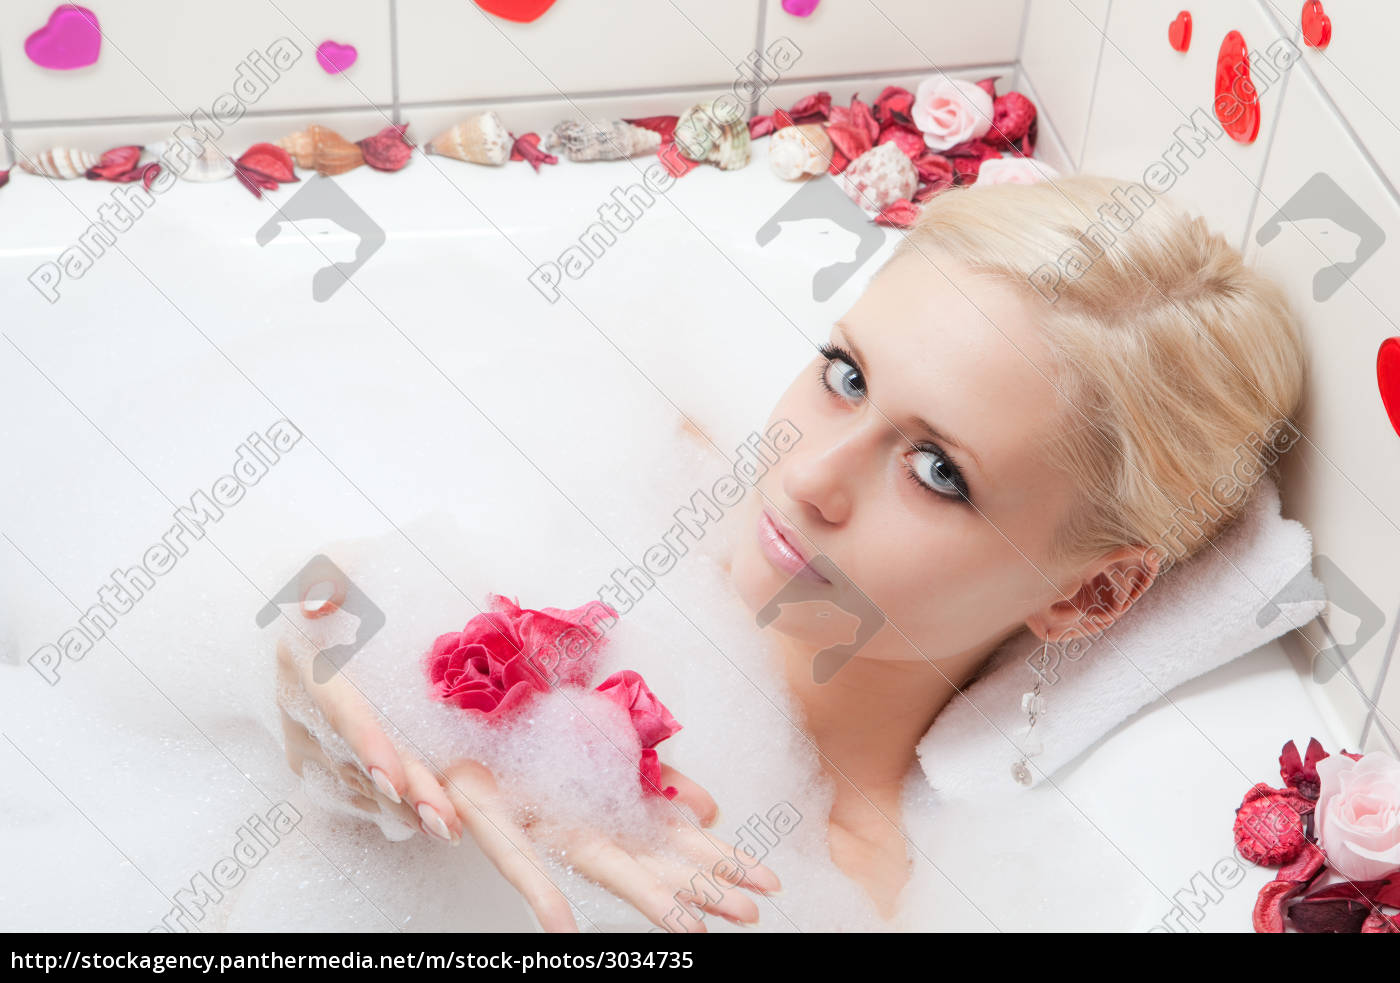 woman, bathing - 3034735